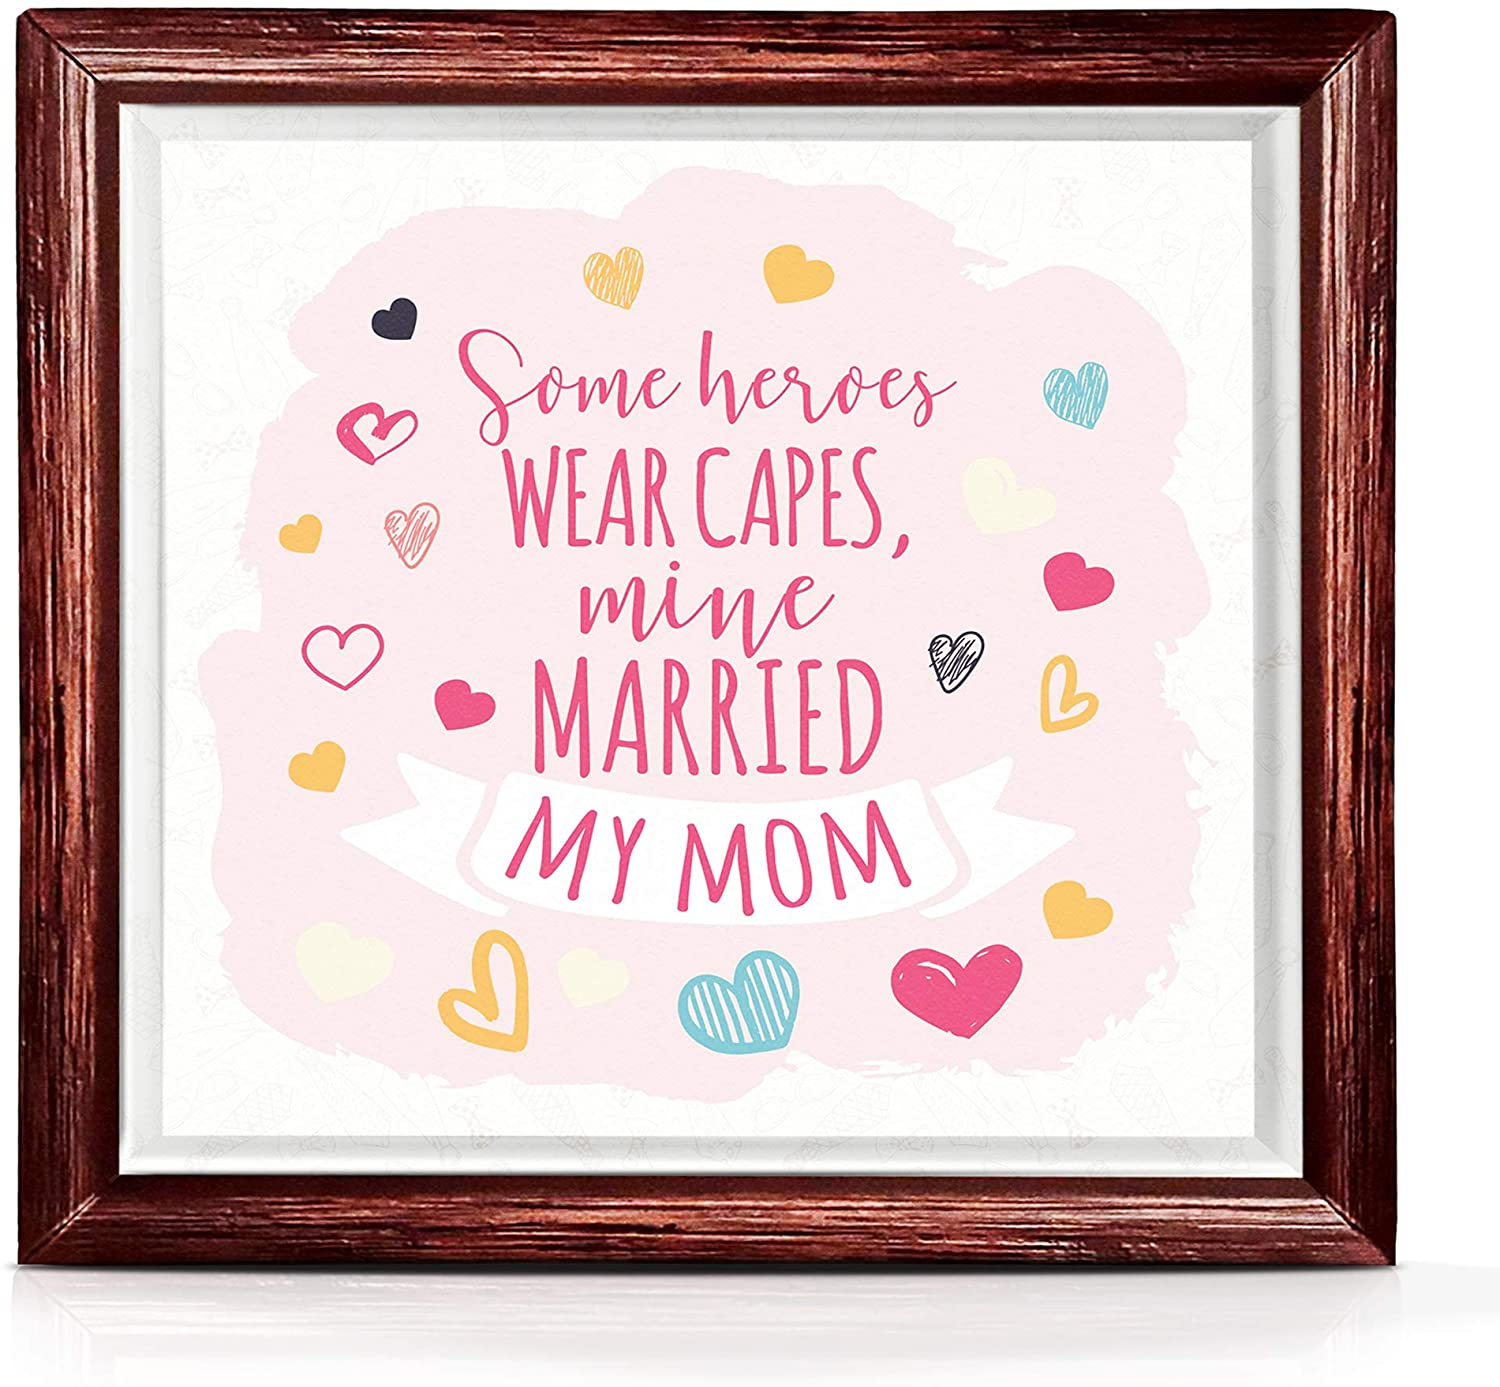 J&J Prime Vision Enterprises Gifts for Your Dad | Decor for Your Dad's House Or Office | Ideas for Fathers Day Presents | Dads Birthday Gifts | Cool Quotes to Decorate Your Space